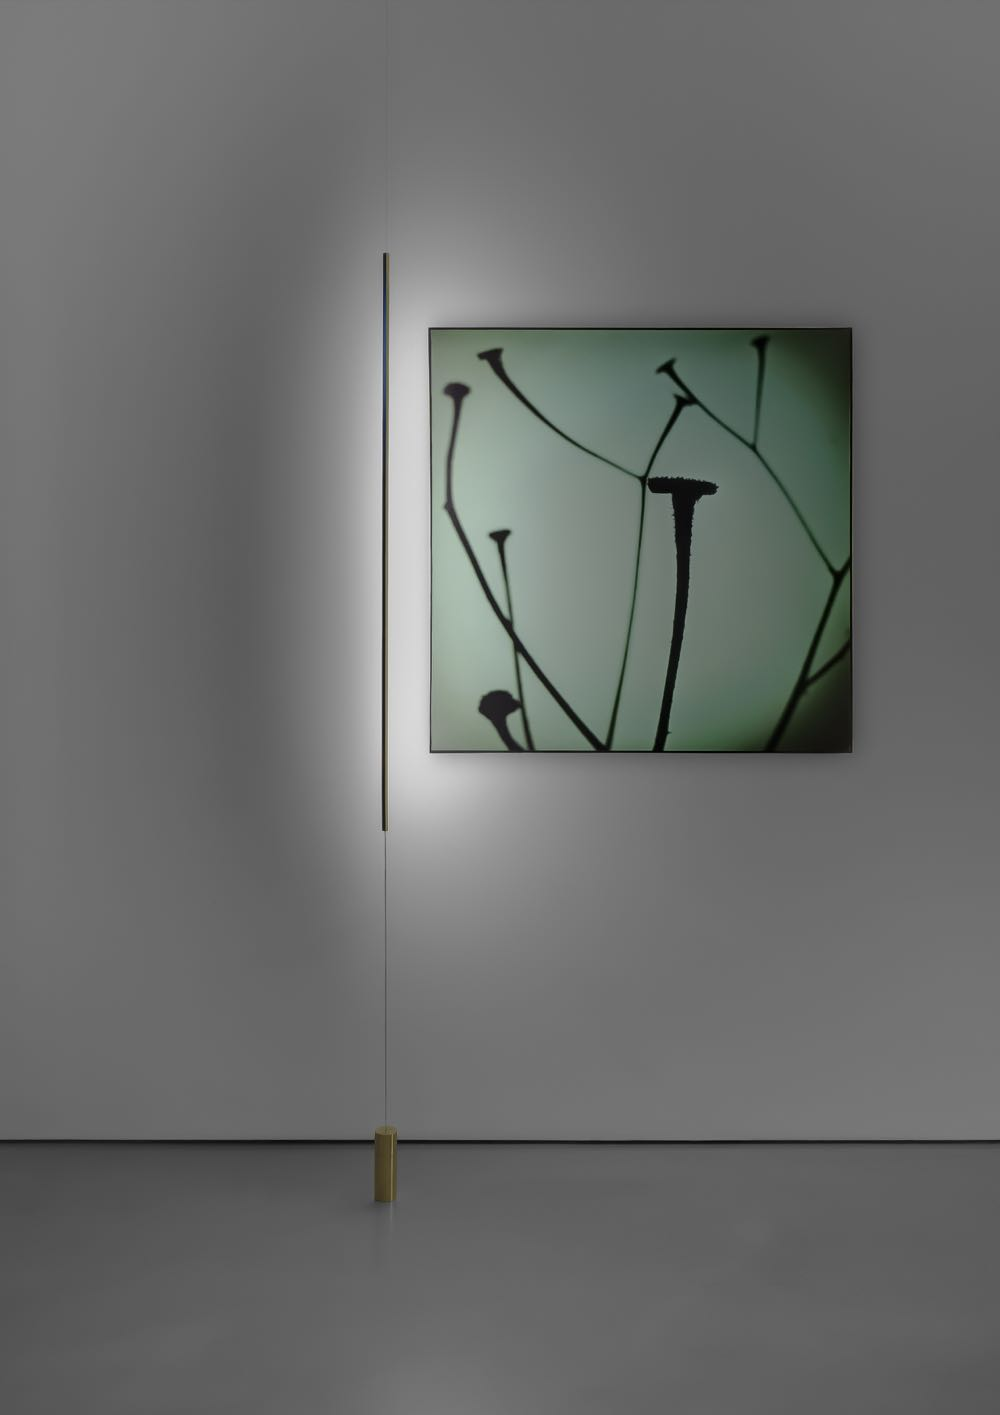 'Masai' from Davide Groppi. Even more minimal than Patricia Urquiola's 'Serena' floor lamp featured earlier.